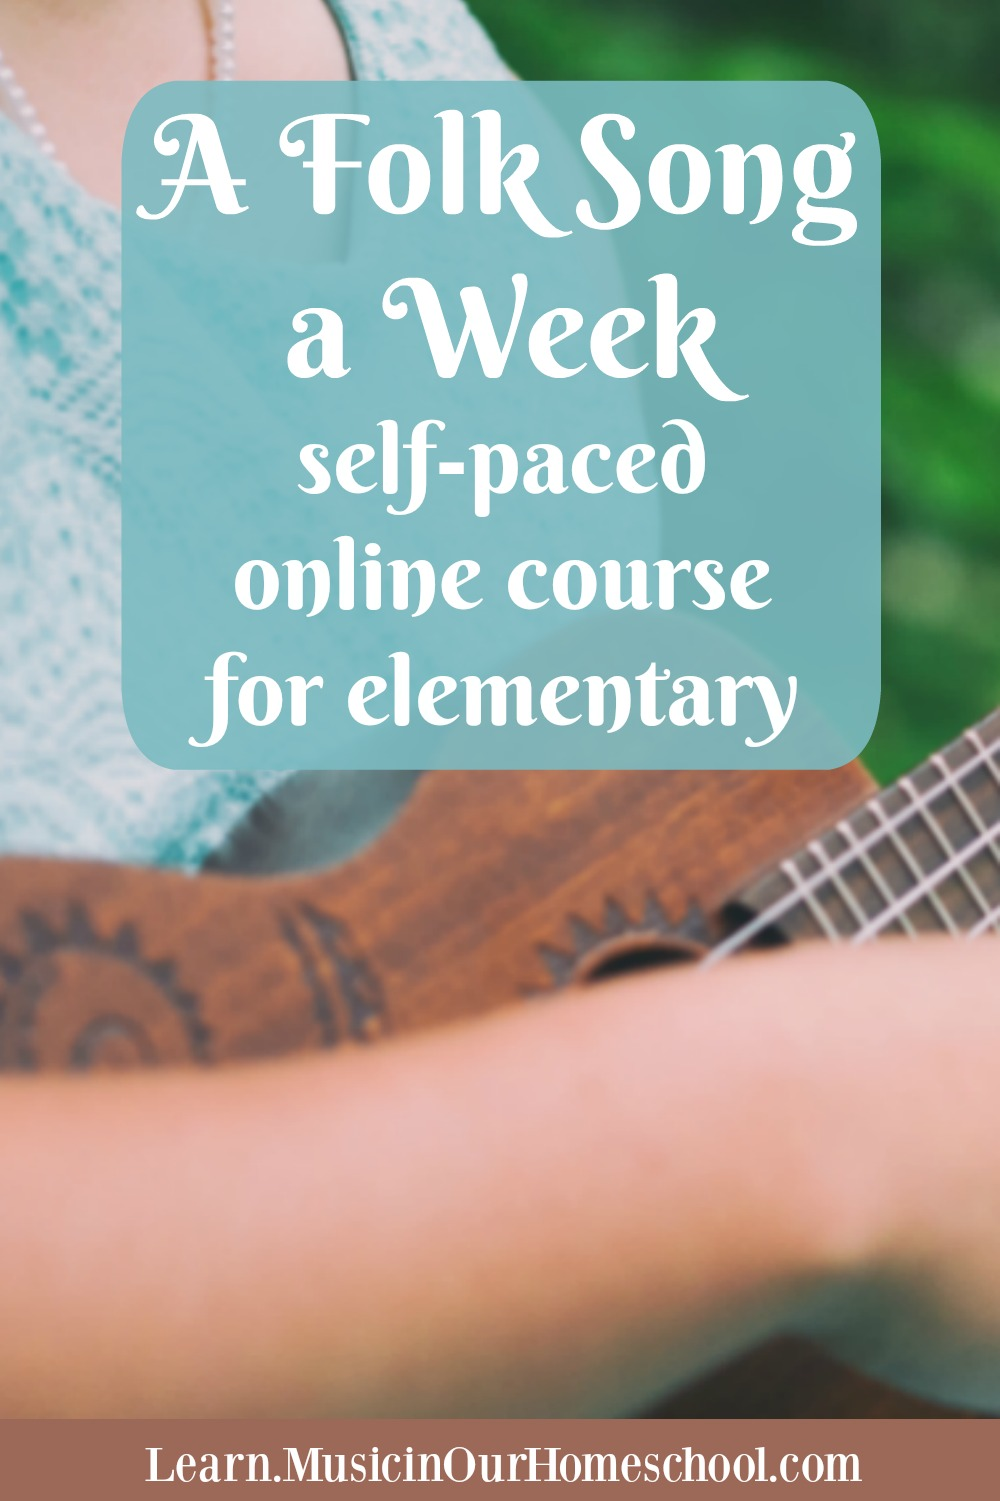 """A Folk Song a Week"" is the newest course from Music in Our Homeschool and is the perfect way to folk songs in your homeschool! Learn 36 songs with your kids. #musiced #folksongs #afolksongaweek #musicinourhomeschool"